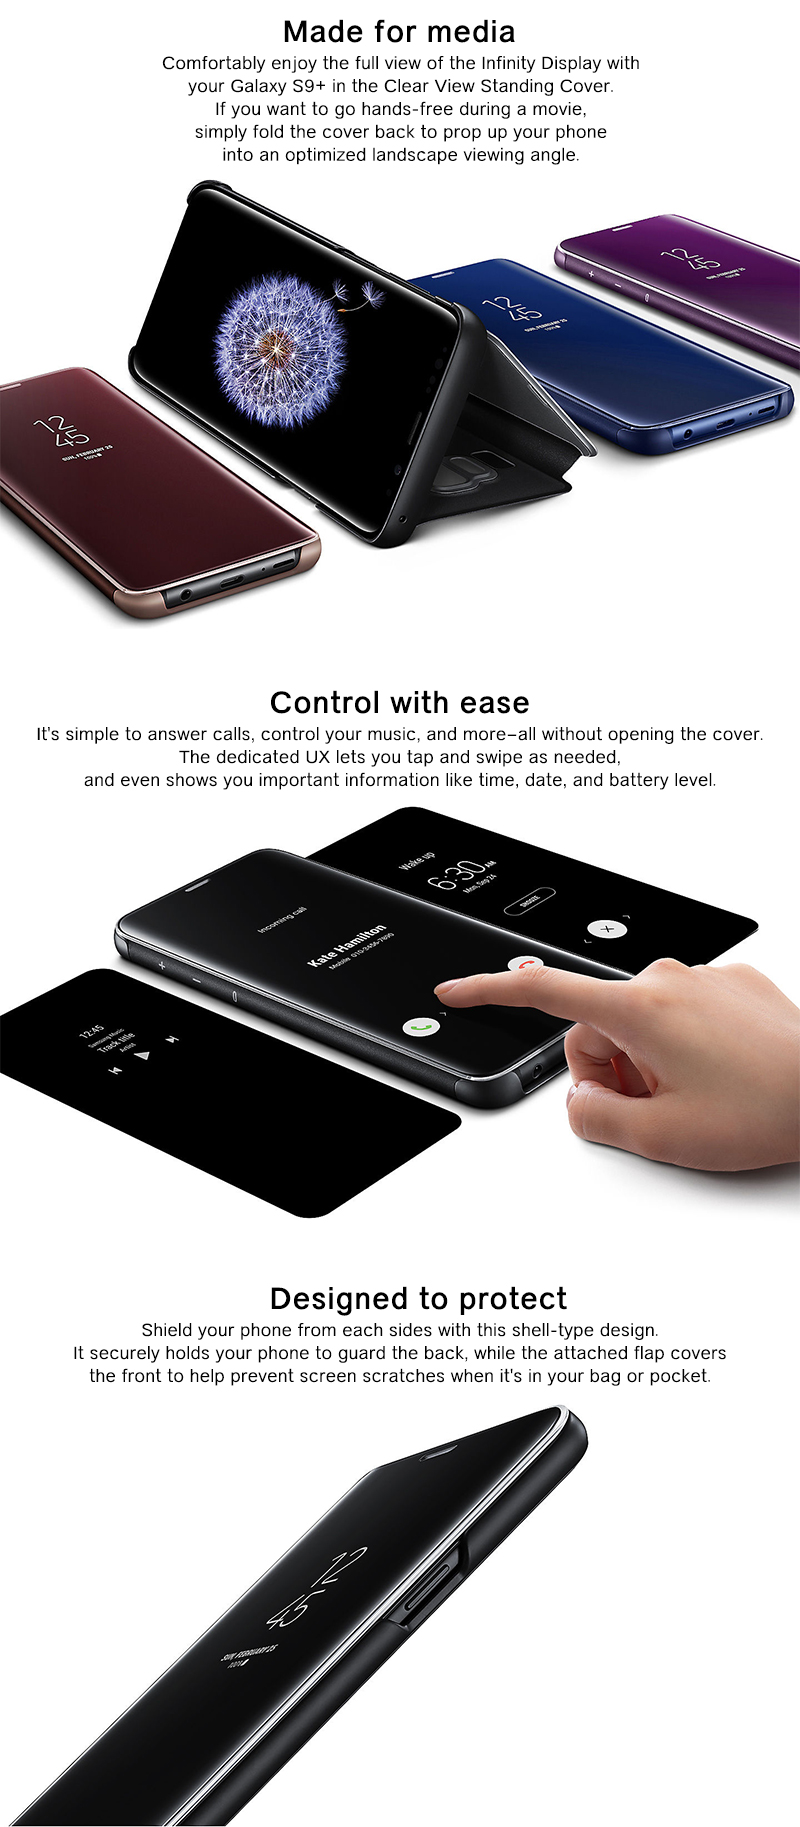 Samsung Accessory Galaxy S9 Plus Clear View Cover